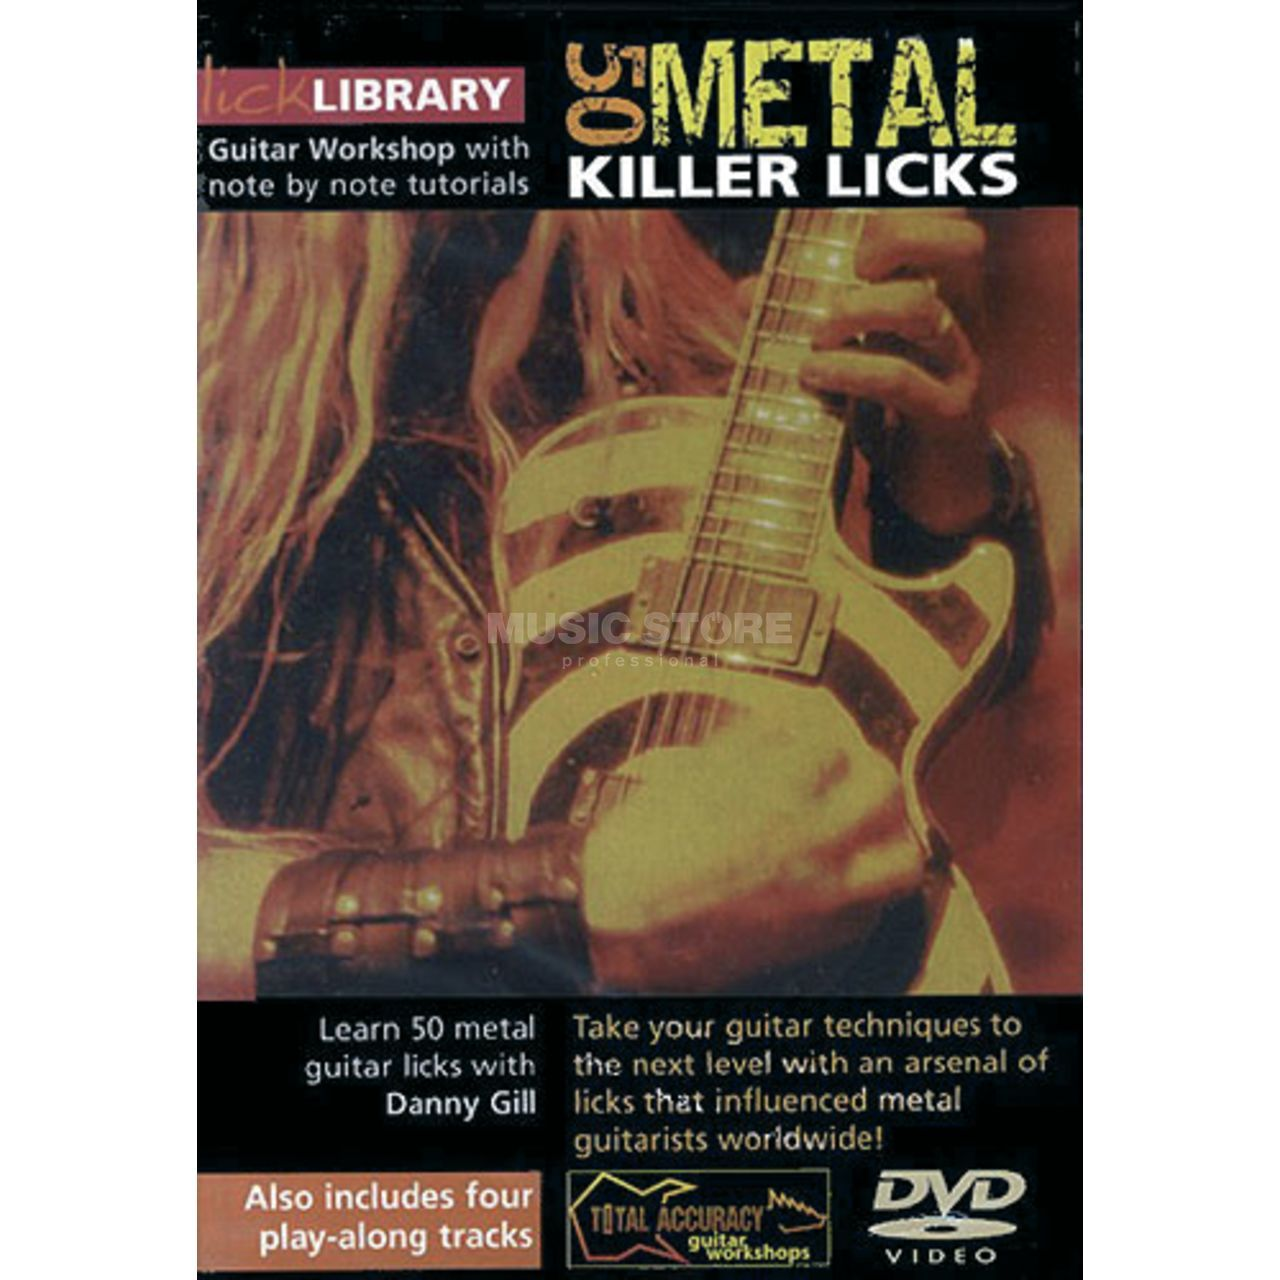 Will Lick library killer guitar consider, that